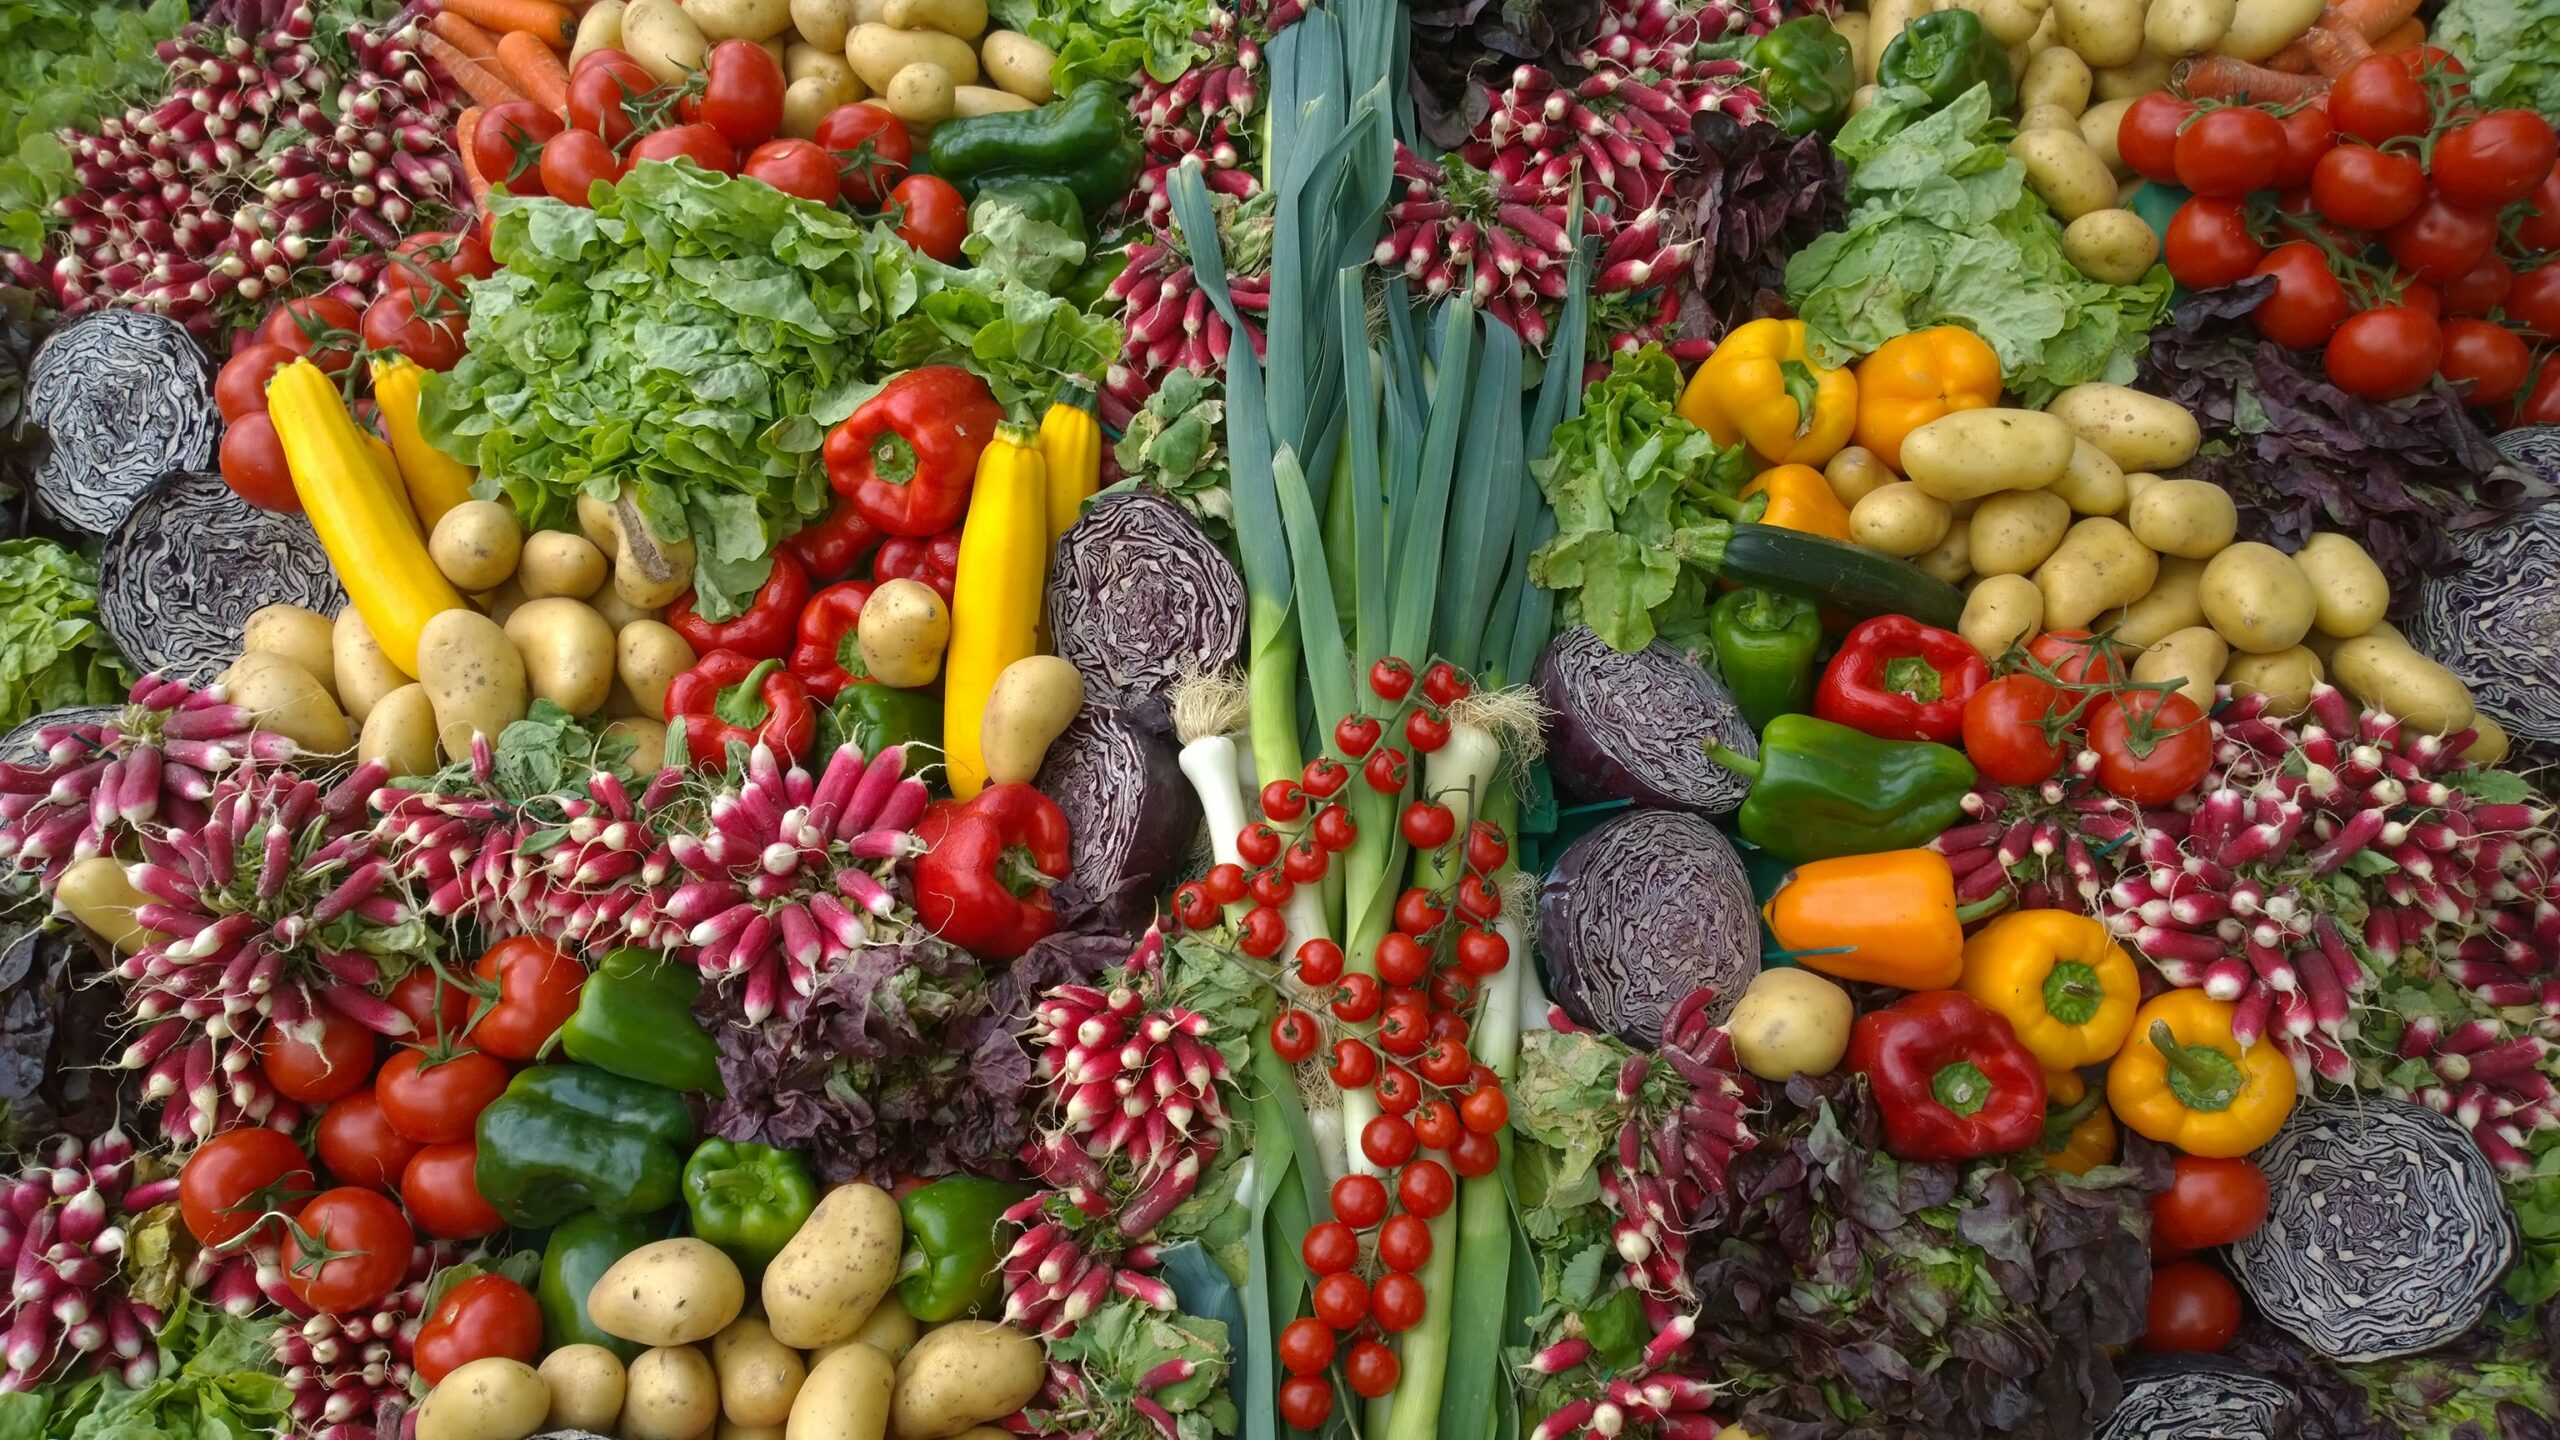 Sustainable Eating with Organic & Non-GMO Foods